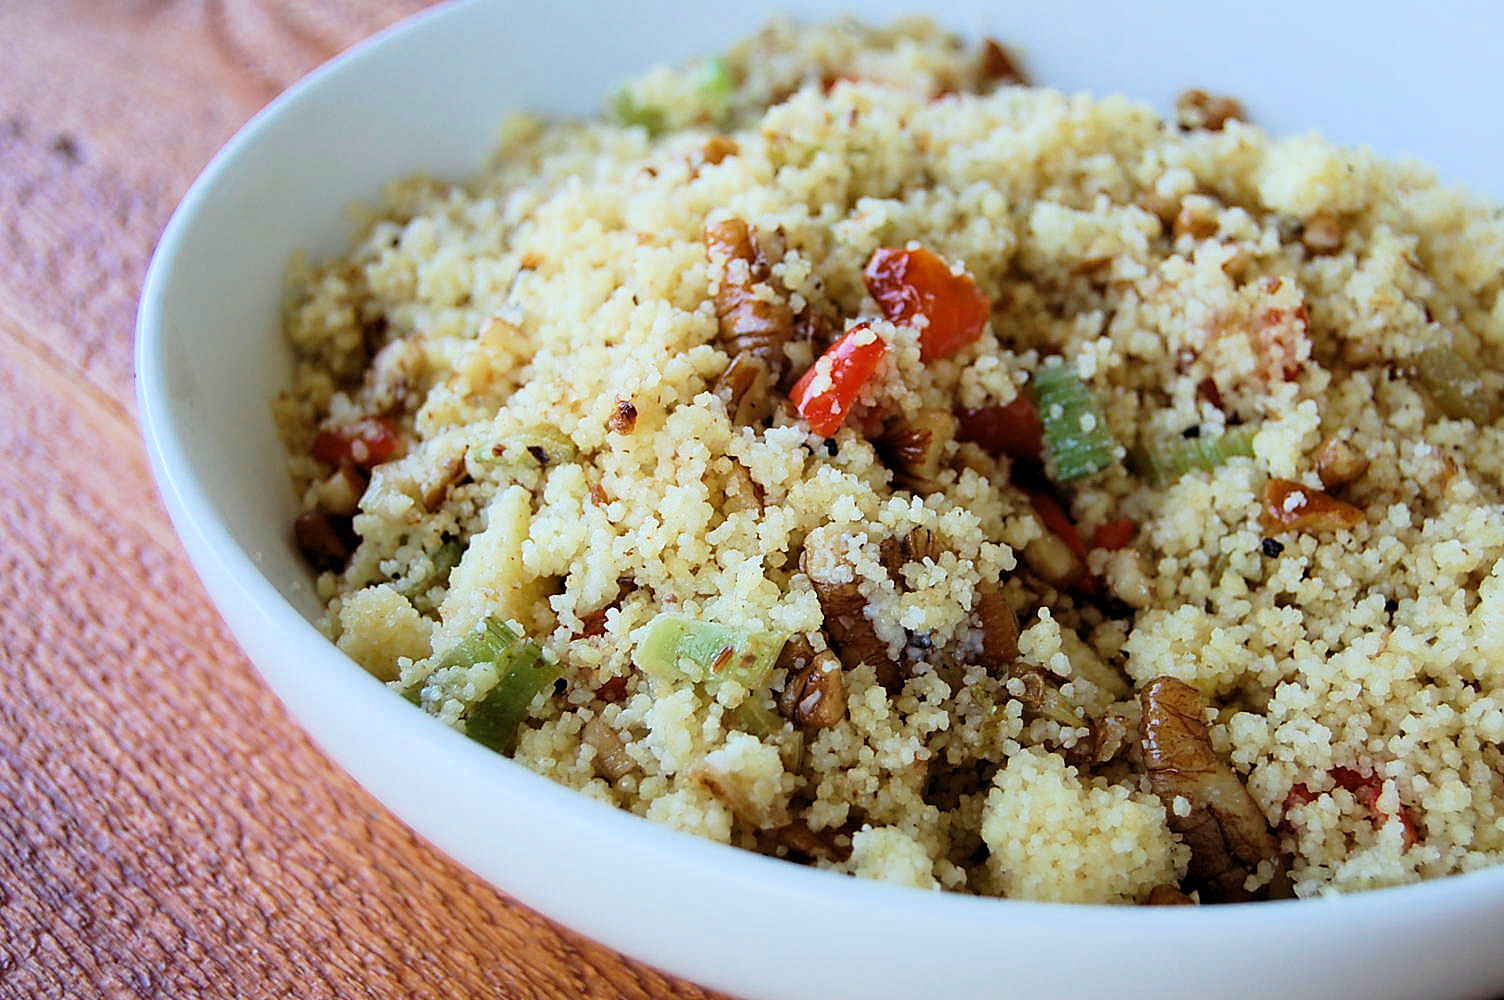 fried-couscous-salad-with-artichokes-pecans-red-peppers-and-celery